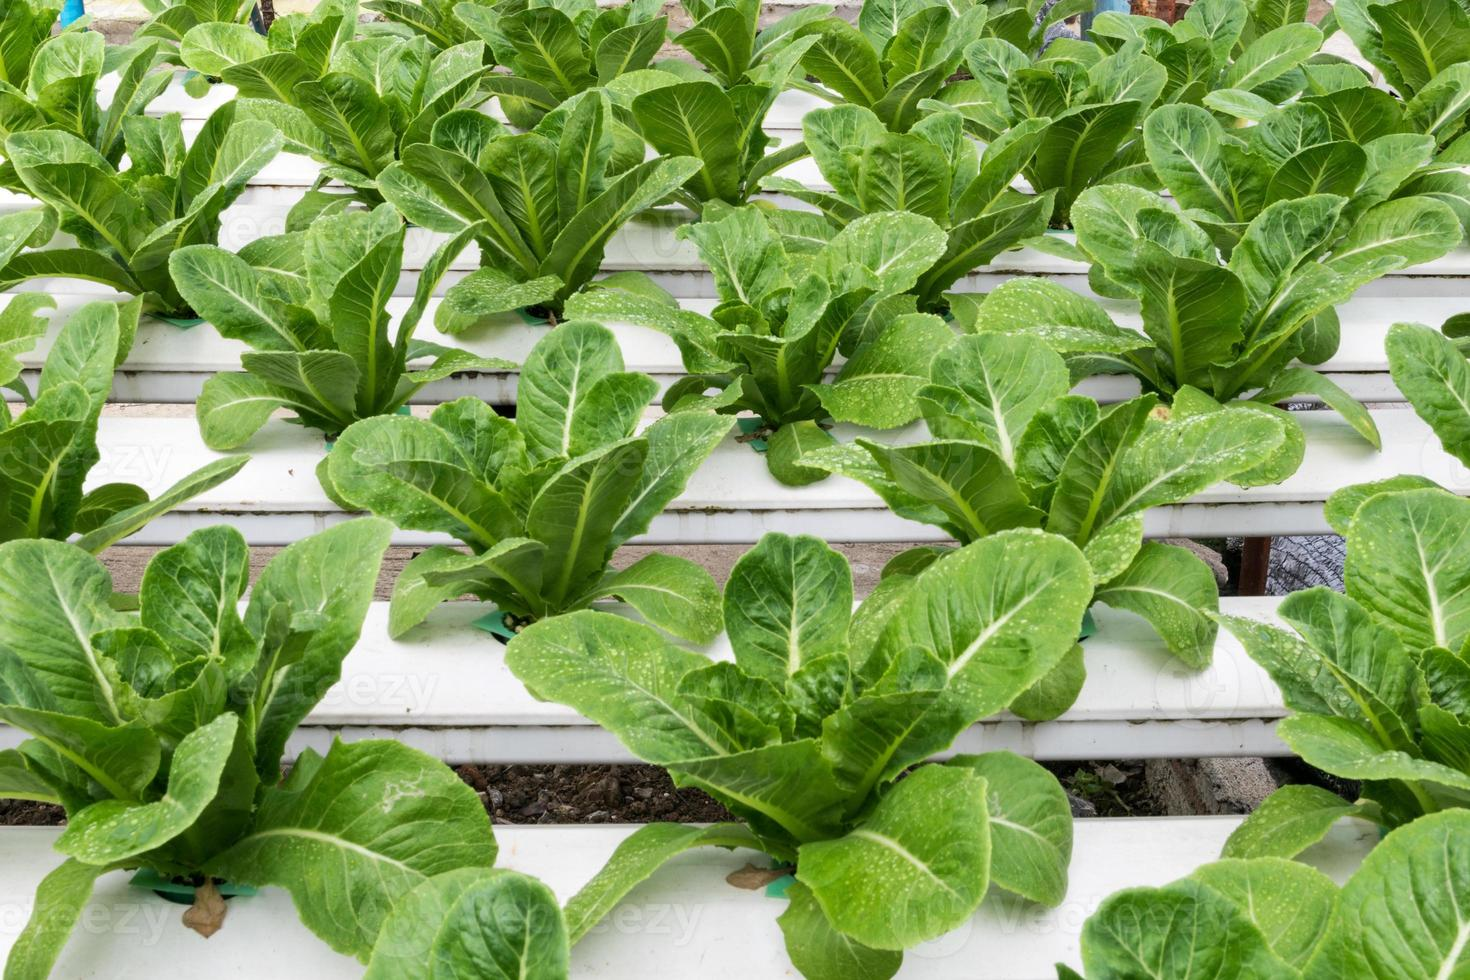 Hydroponic vegetables growing in greenhouse photo